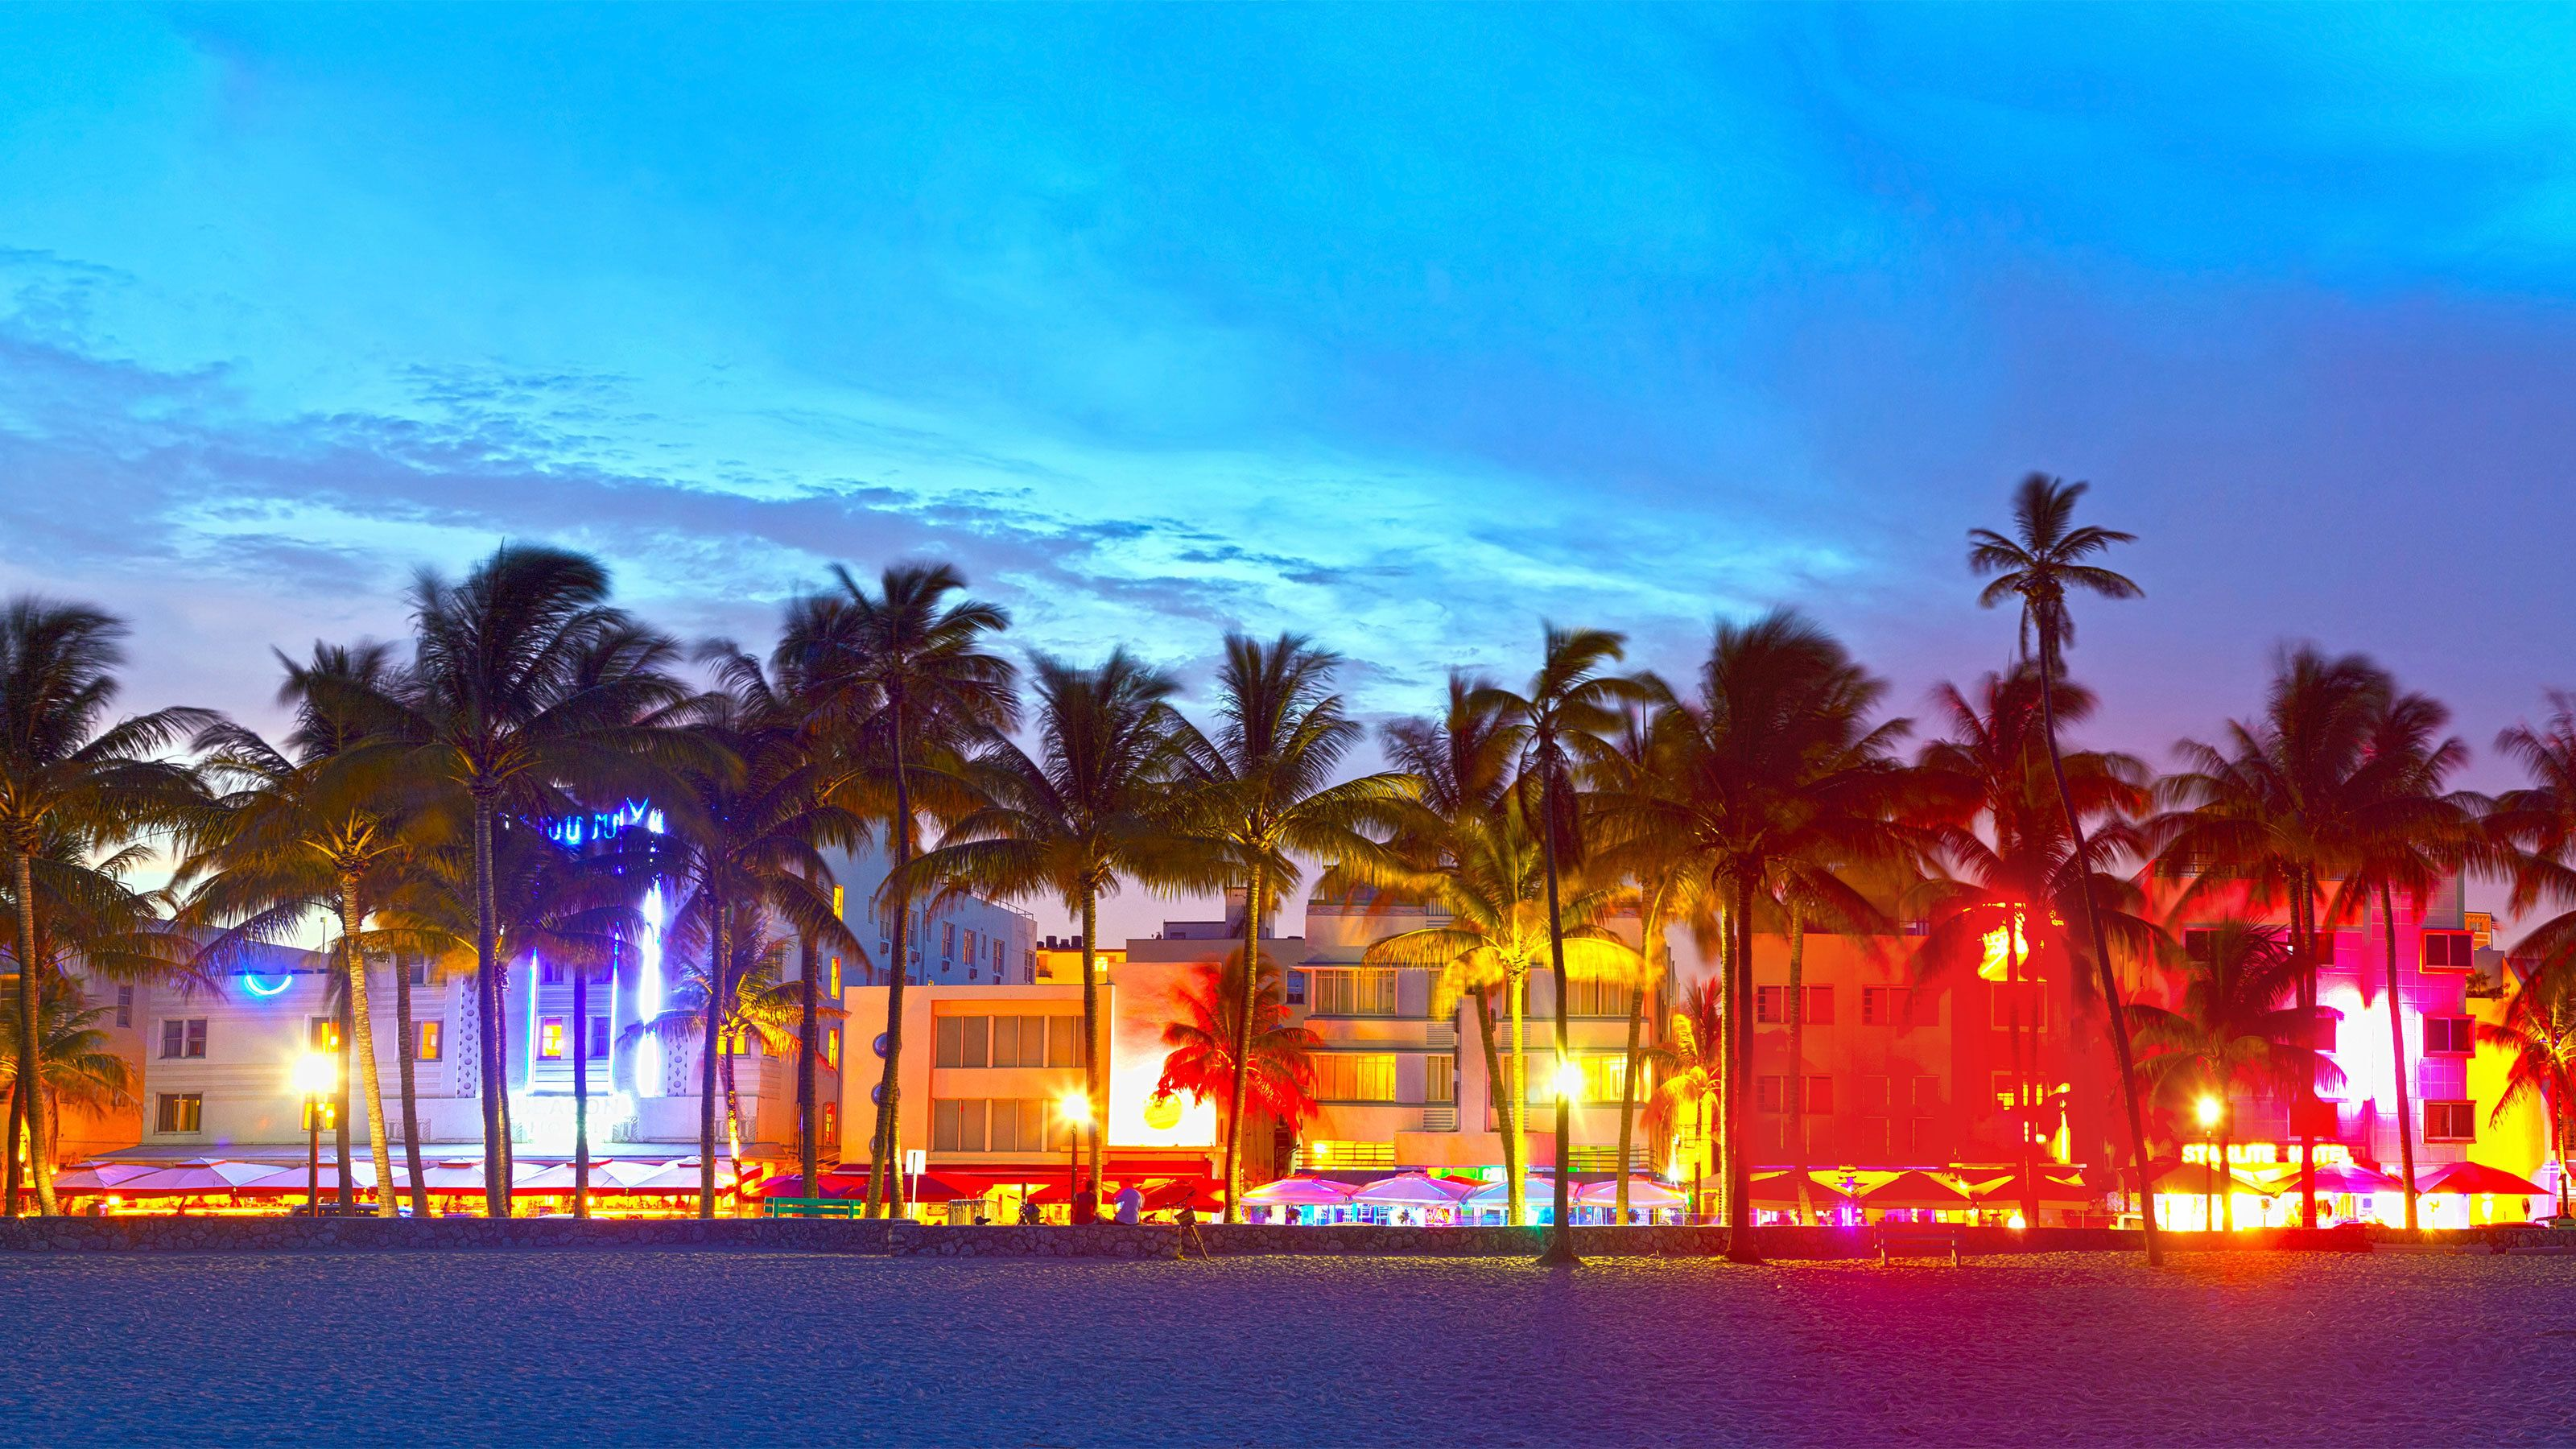 South Beach lit up with neon lights at night in Orlando.